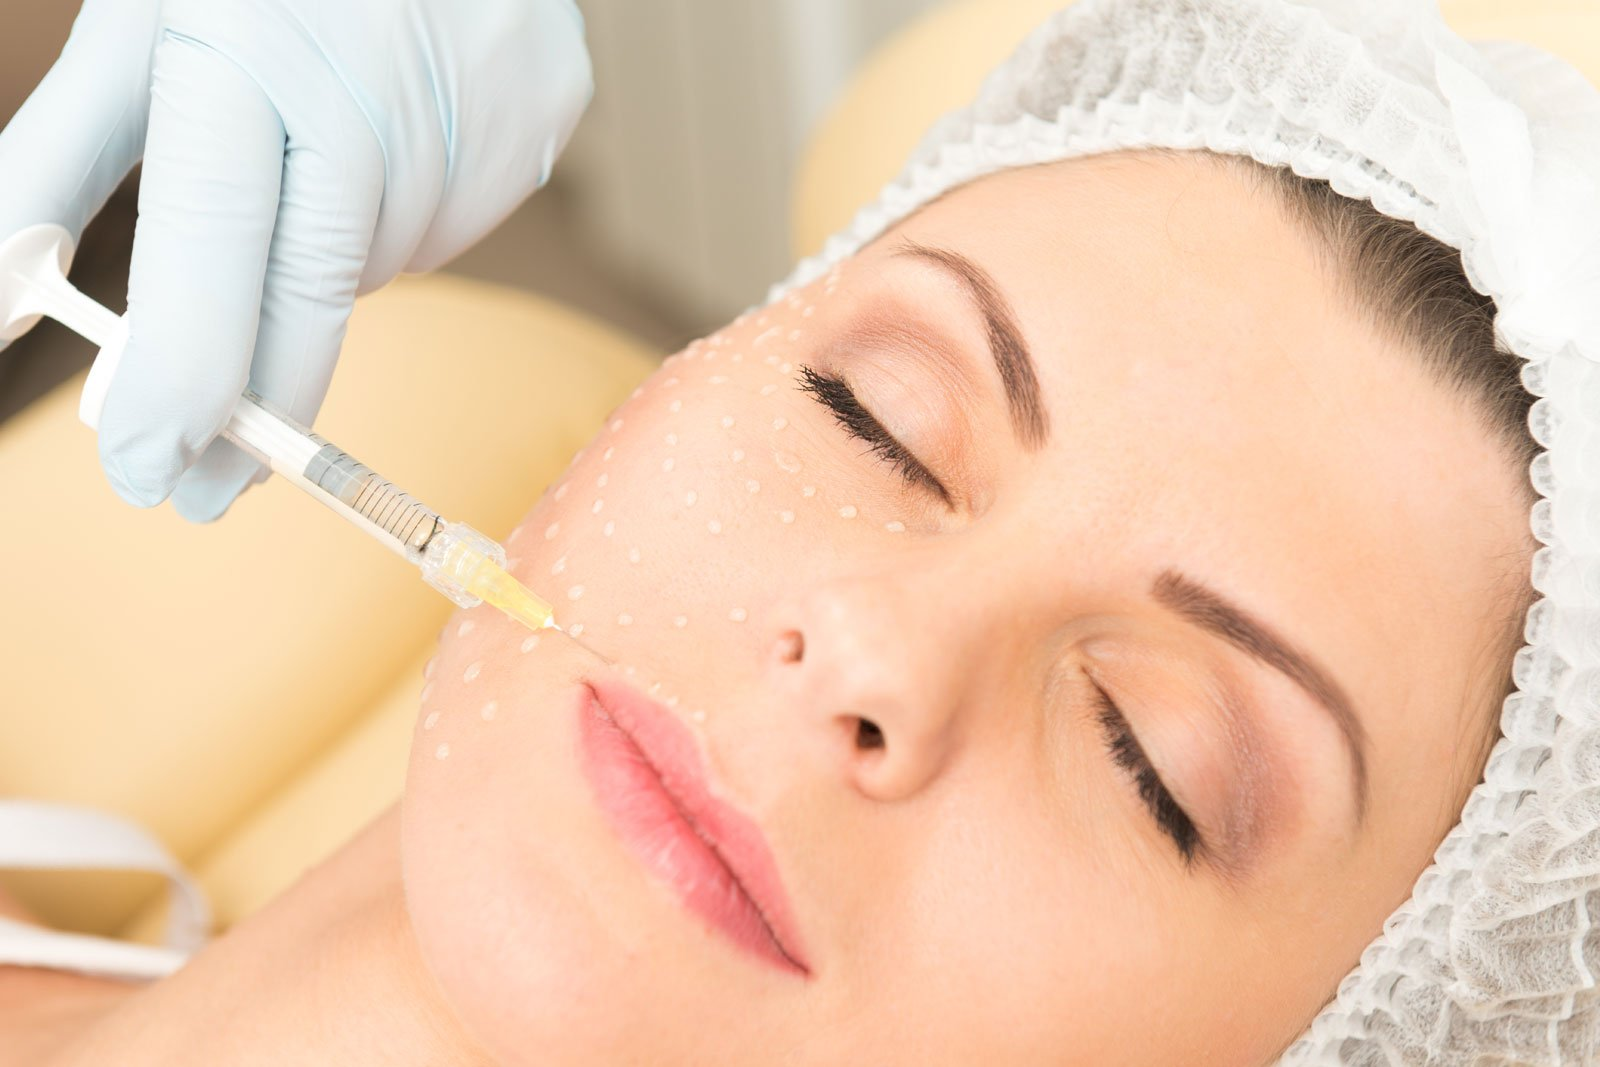 woman with medspa injection